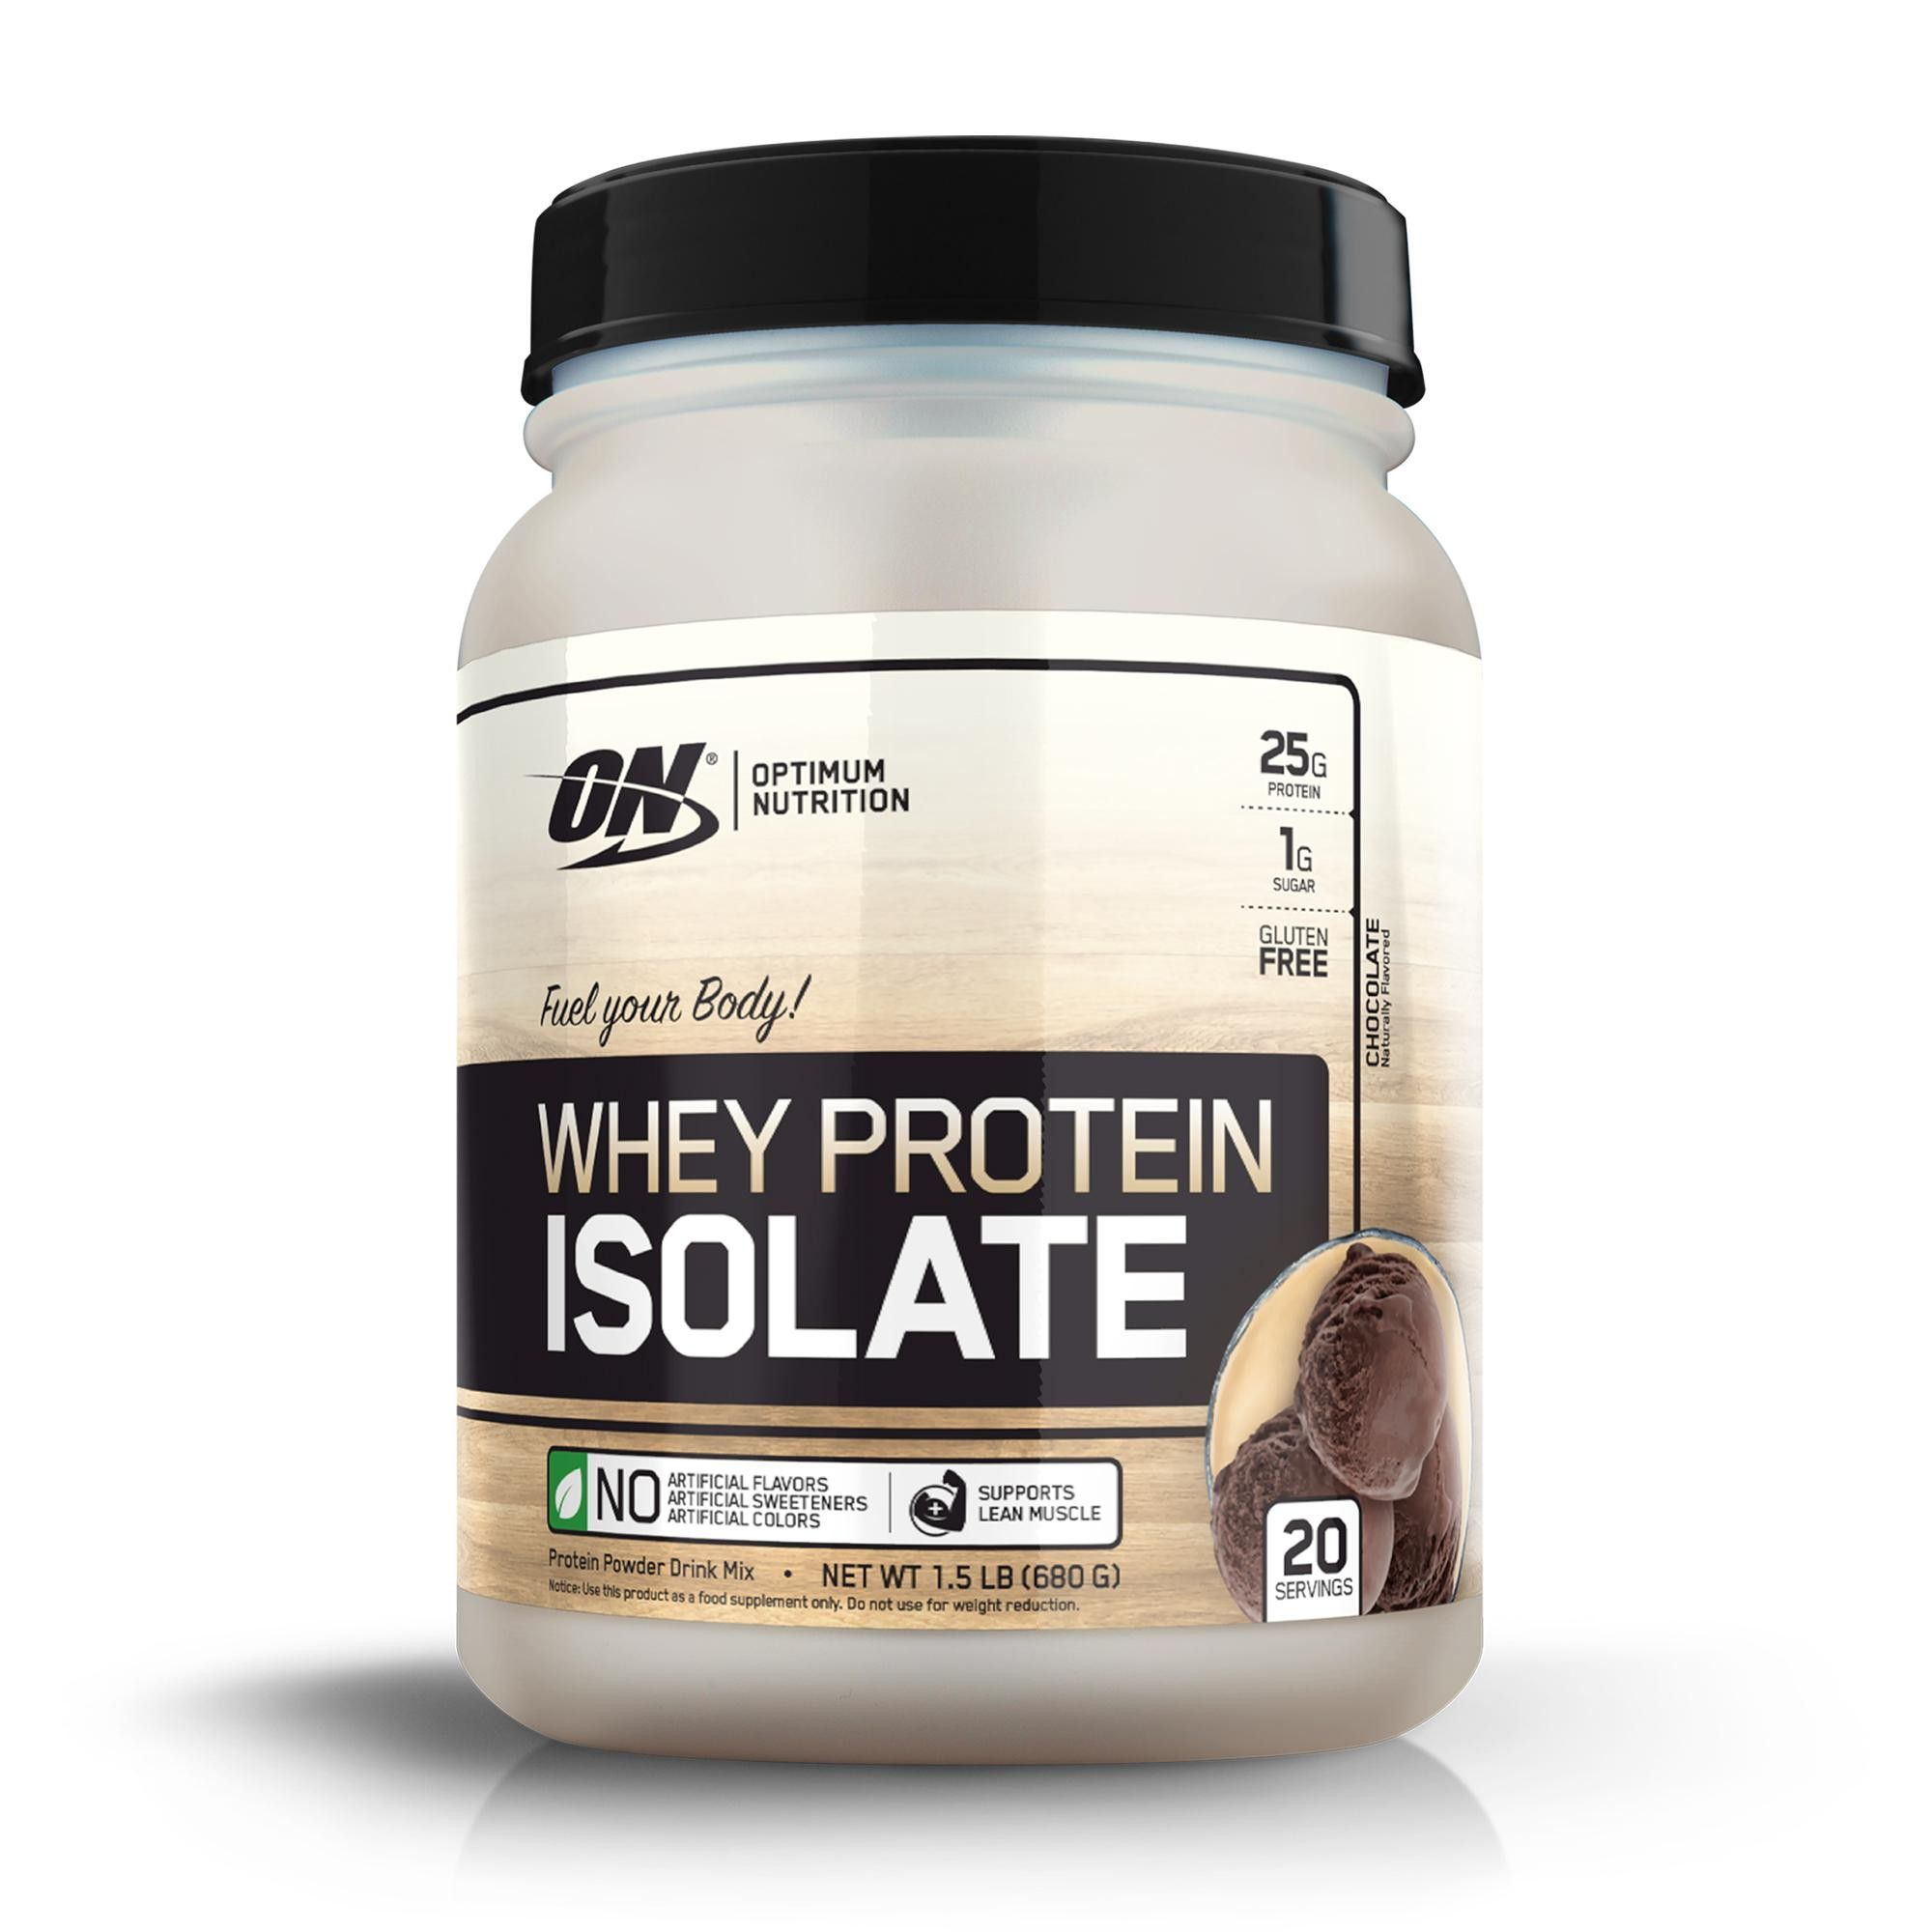 Optimum Nutrition Whey Isolate Protein Powder Chocolate 24oz Optimum Nutrition Whey Optimum Nutrition Whey Protein Isolate